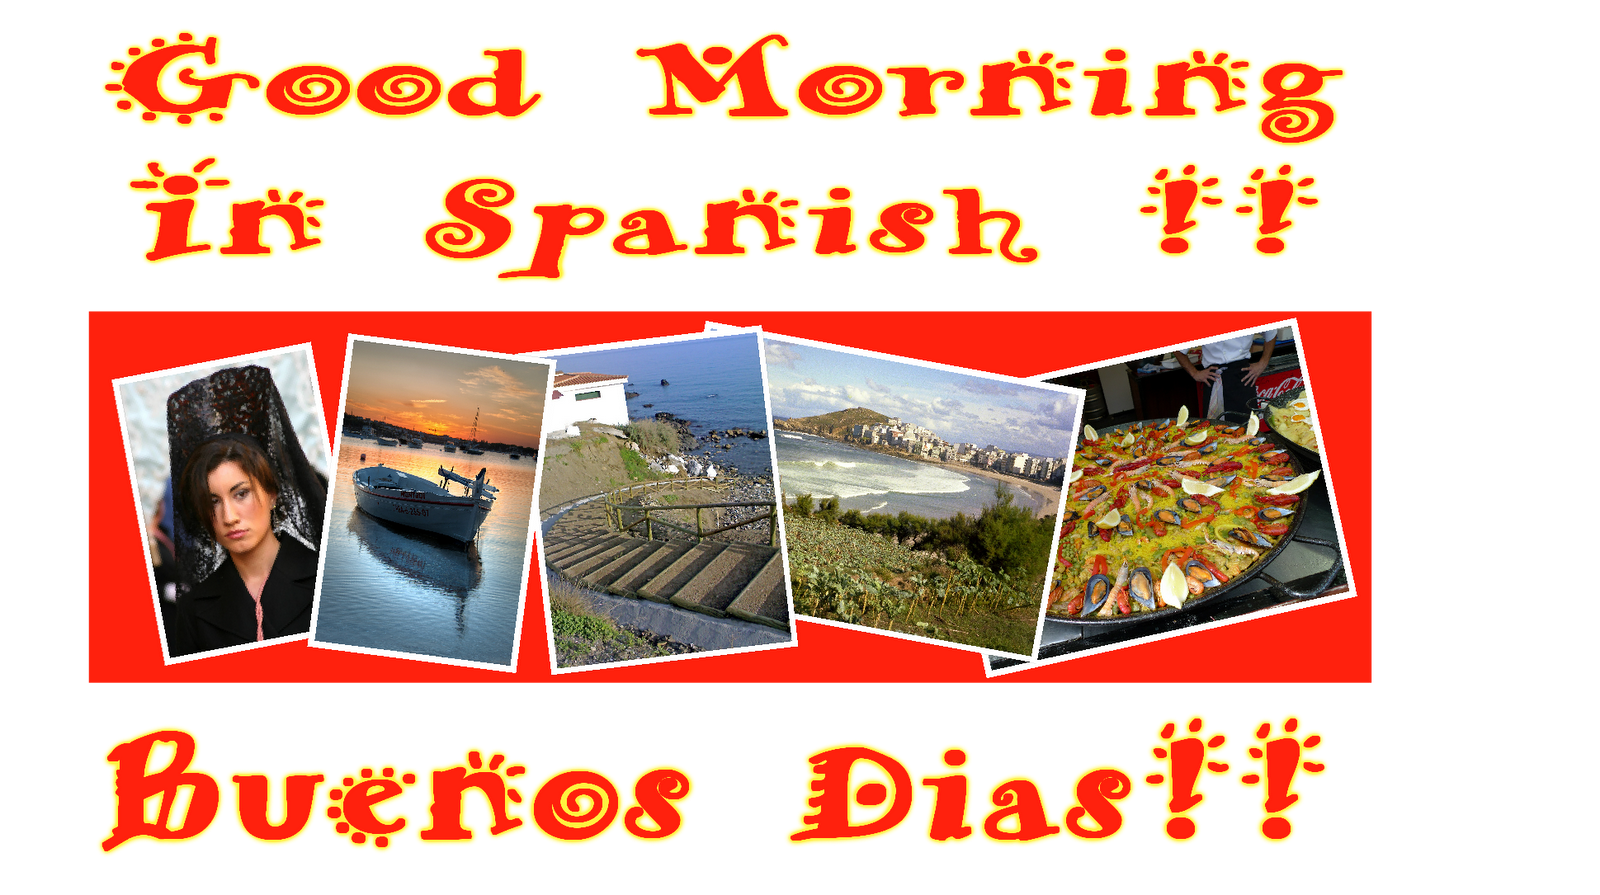 Good Morning In Spanish Is What : Good morning in spanish